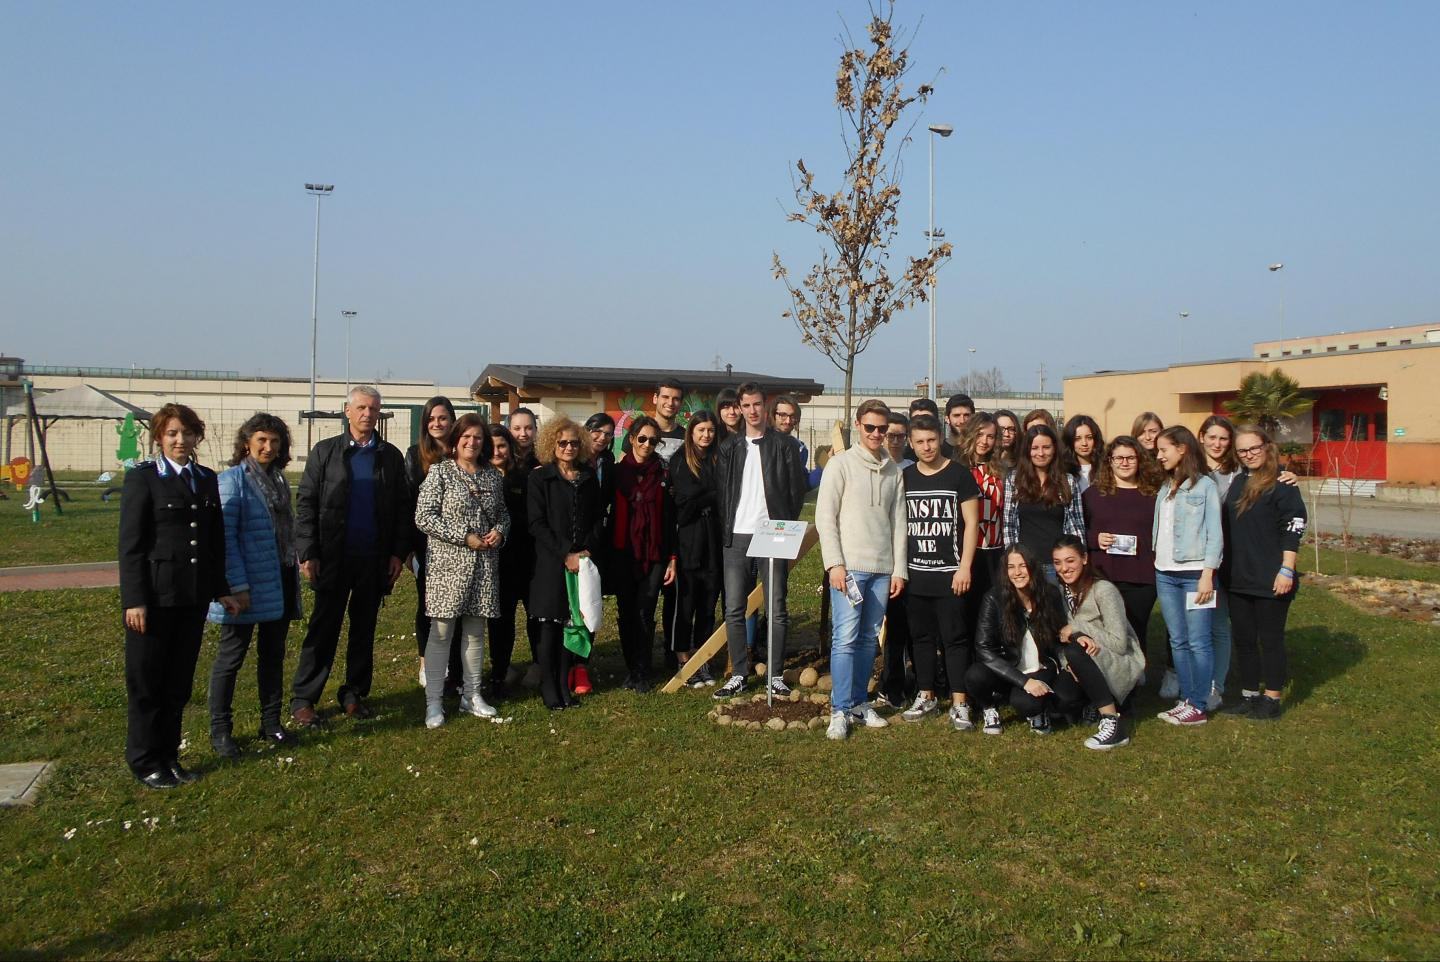 Students of the educational institute M. Bianchi of Monza